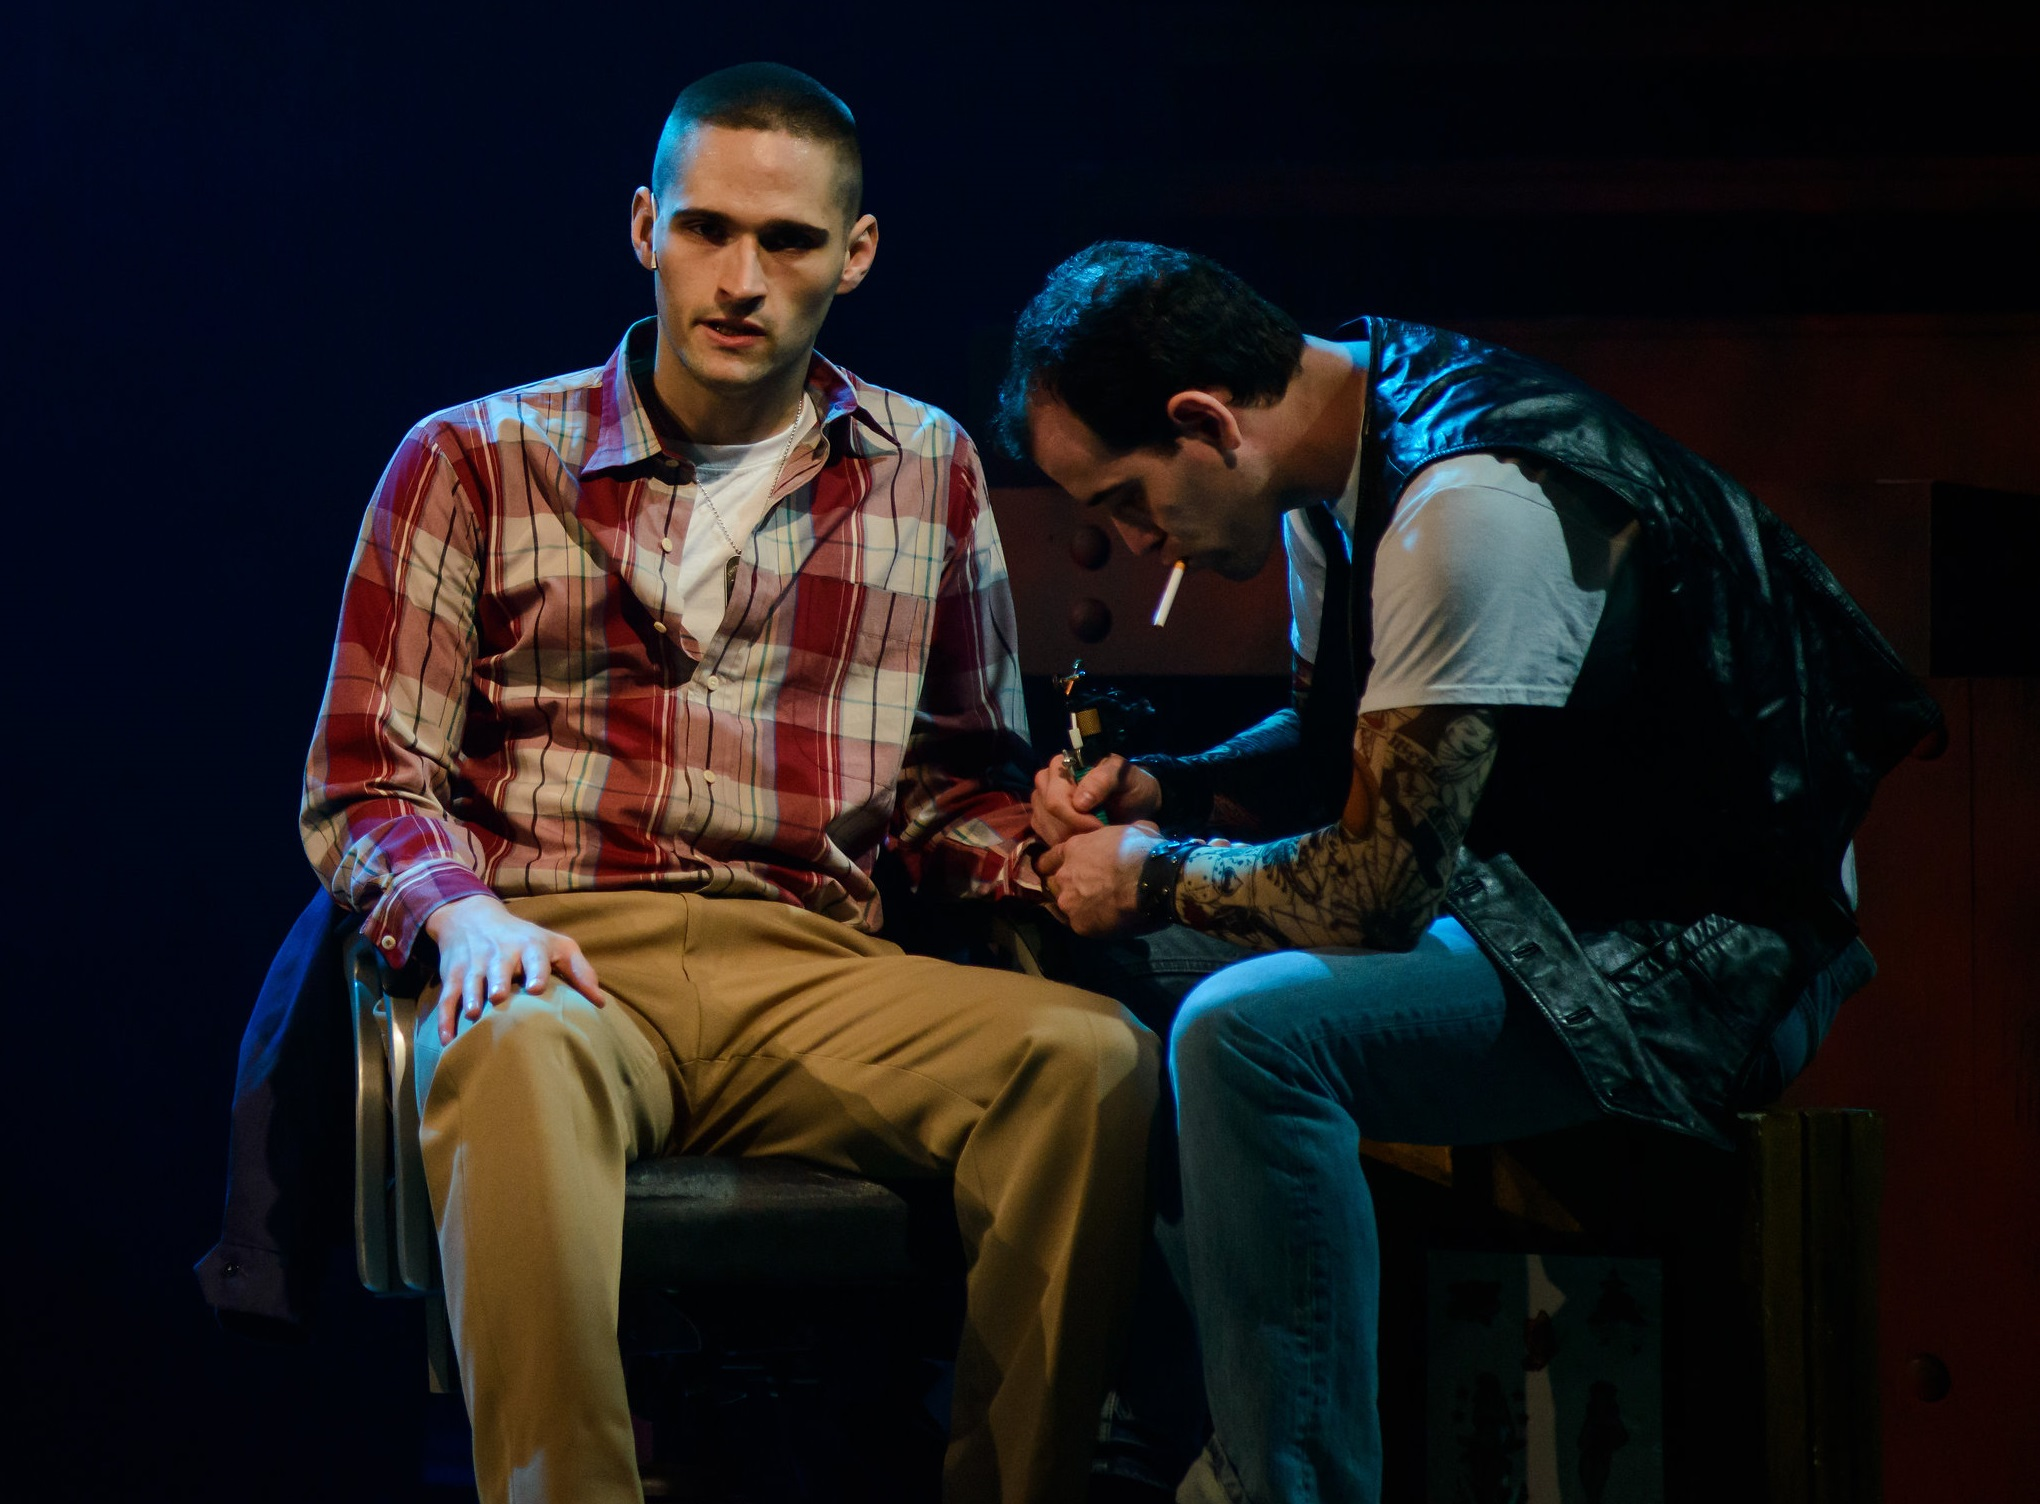 Kyle Segarra as Bernstein, JP Dunphy as rough Tattoo Artist in DOGFIGHT. Photo by Maura McConnell.